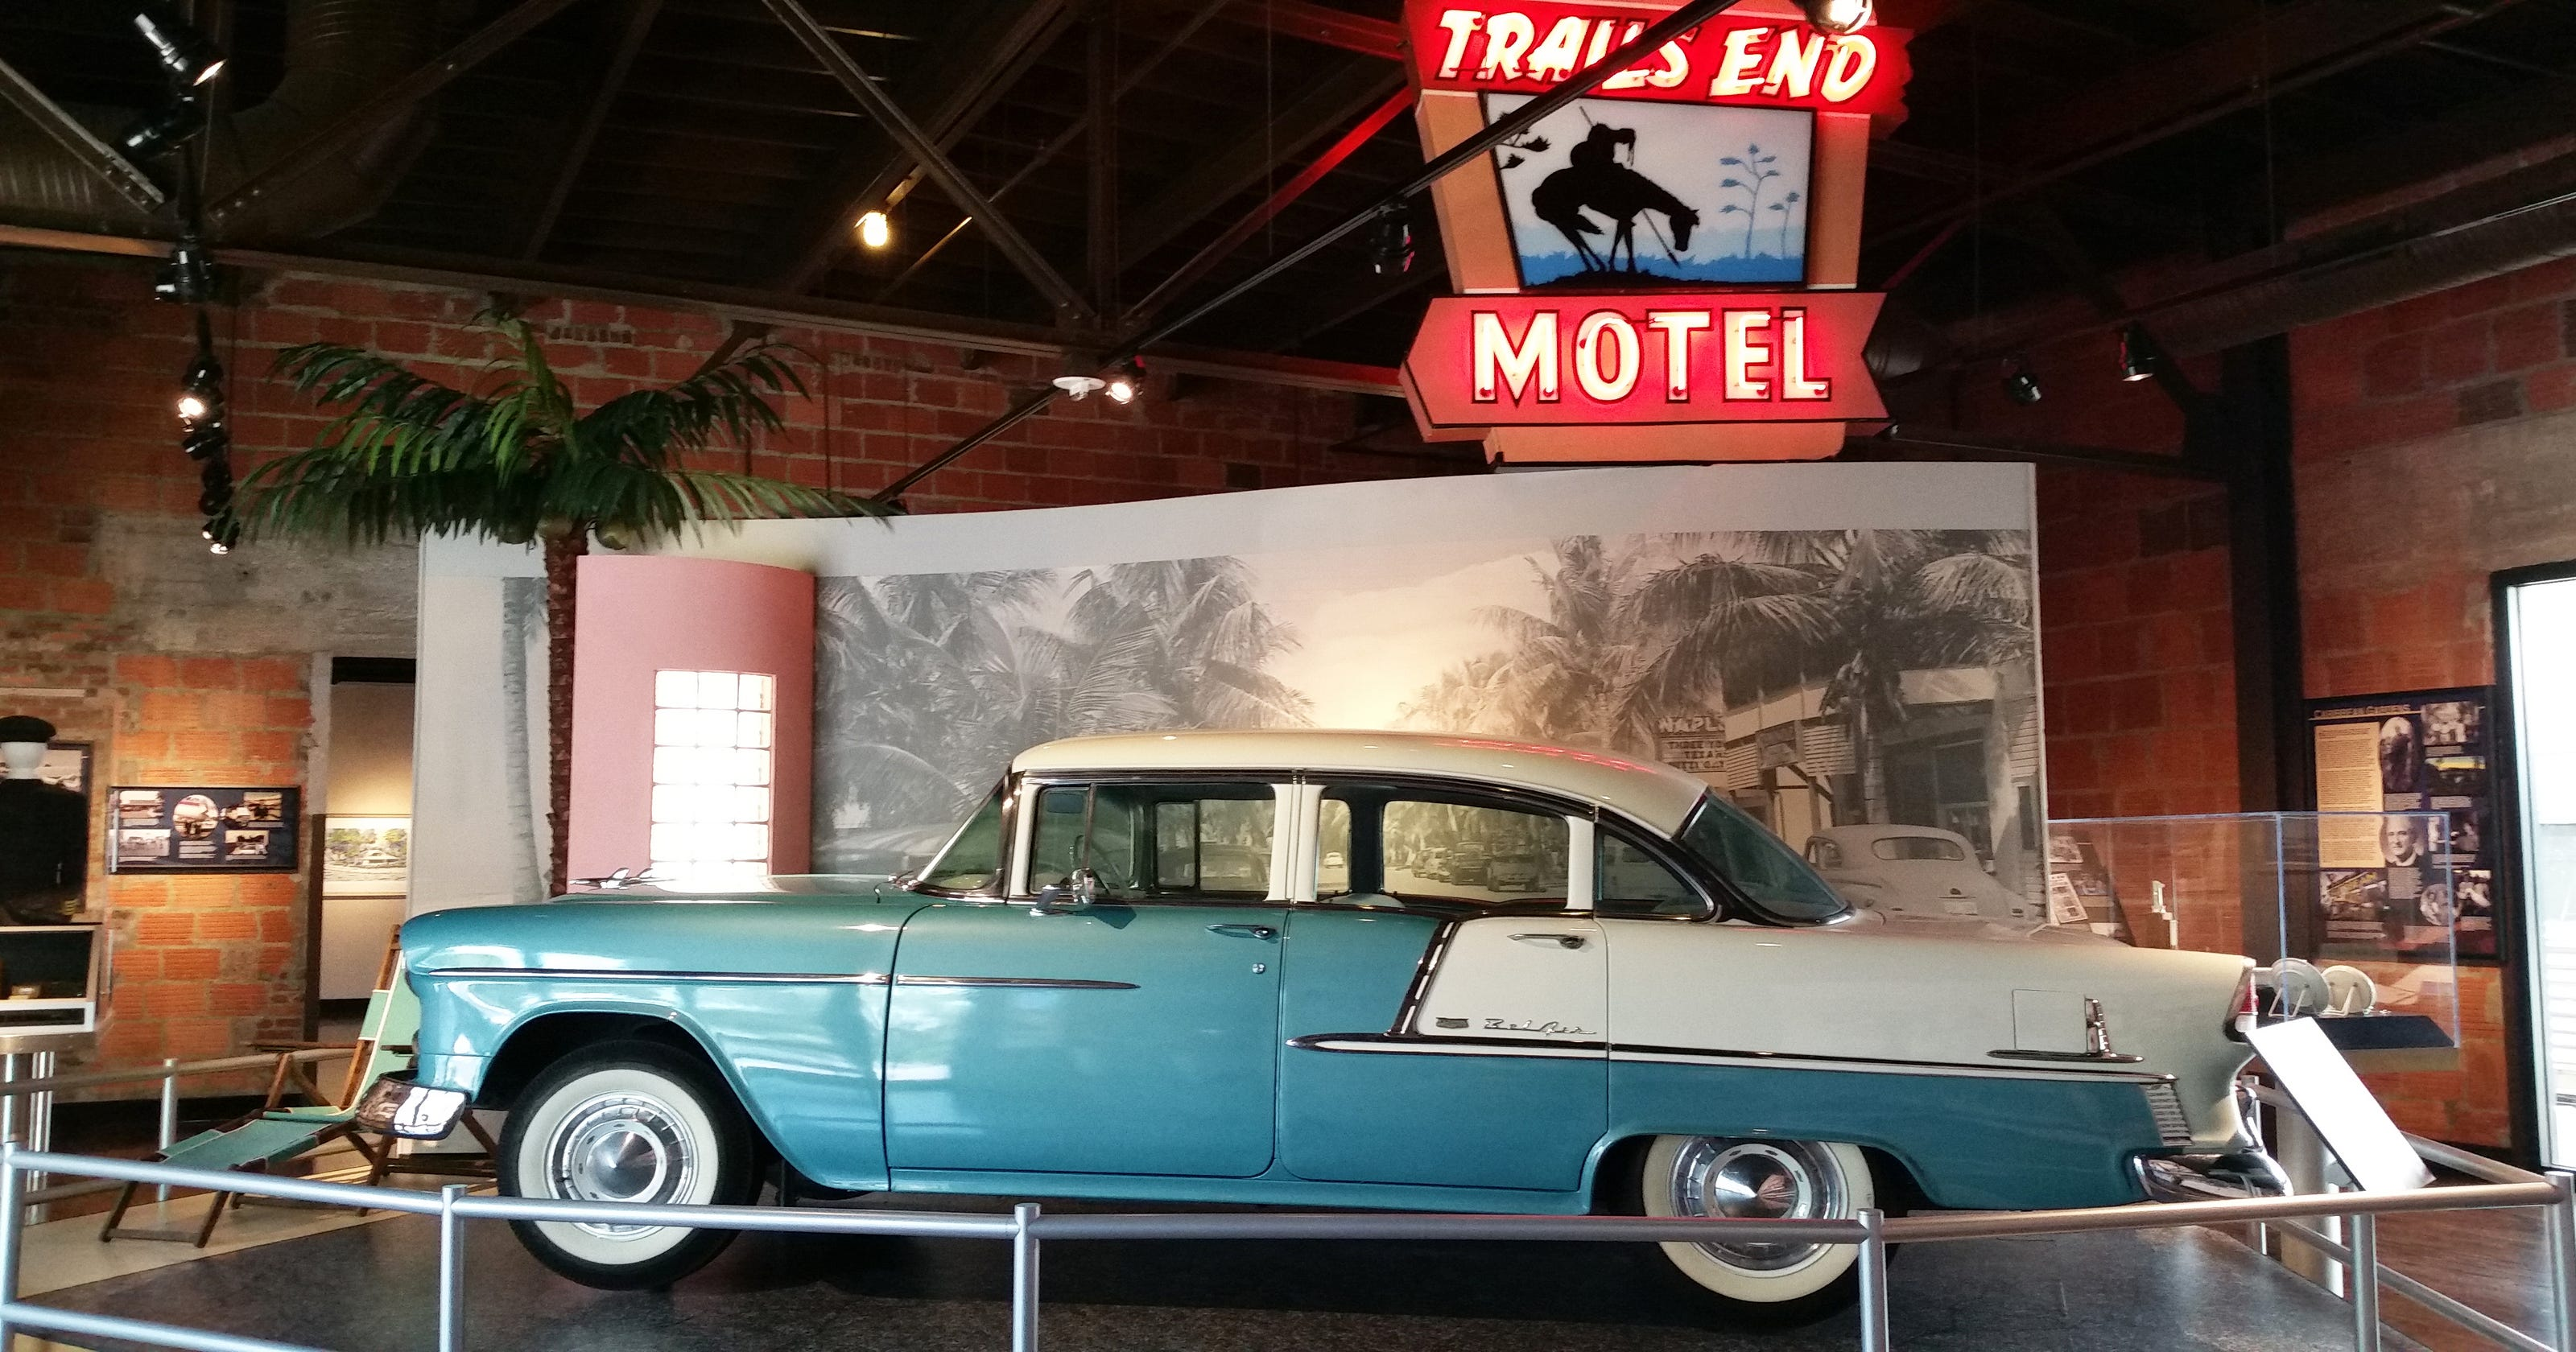 Museums To Visit In Southwest Florida - Edison car show ft myers